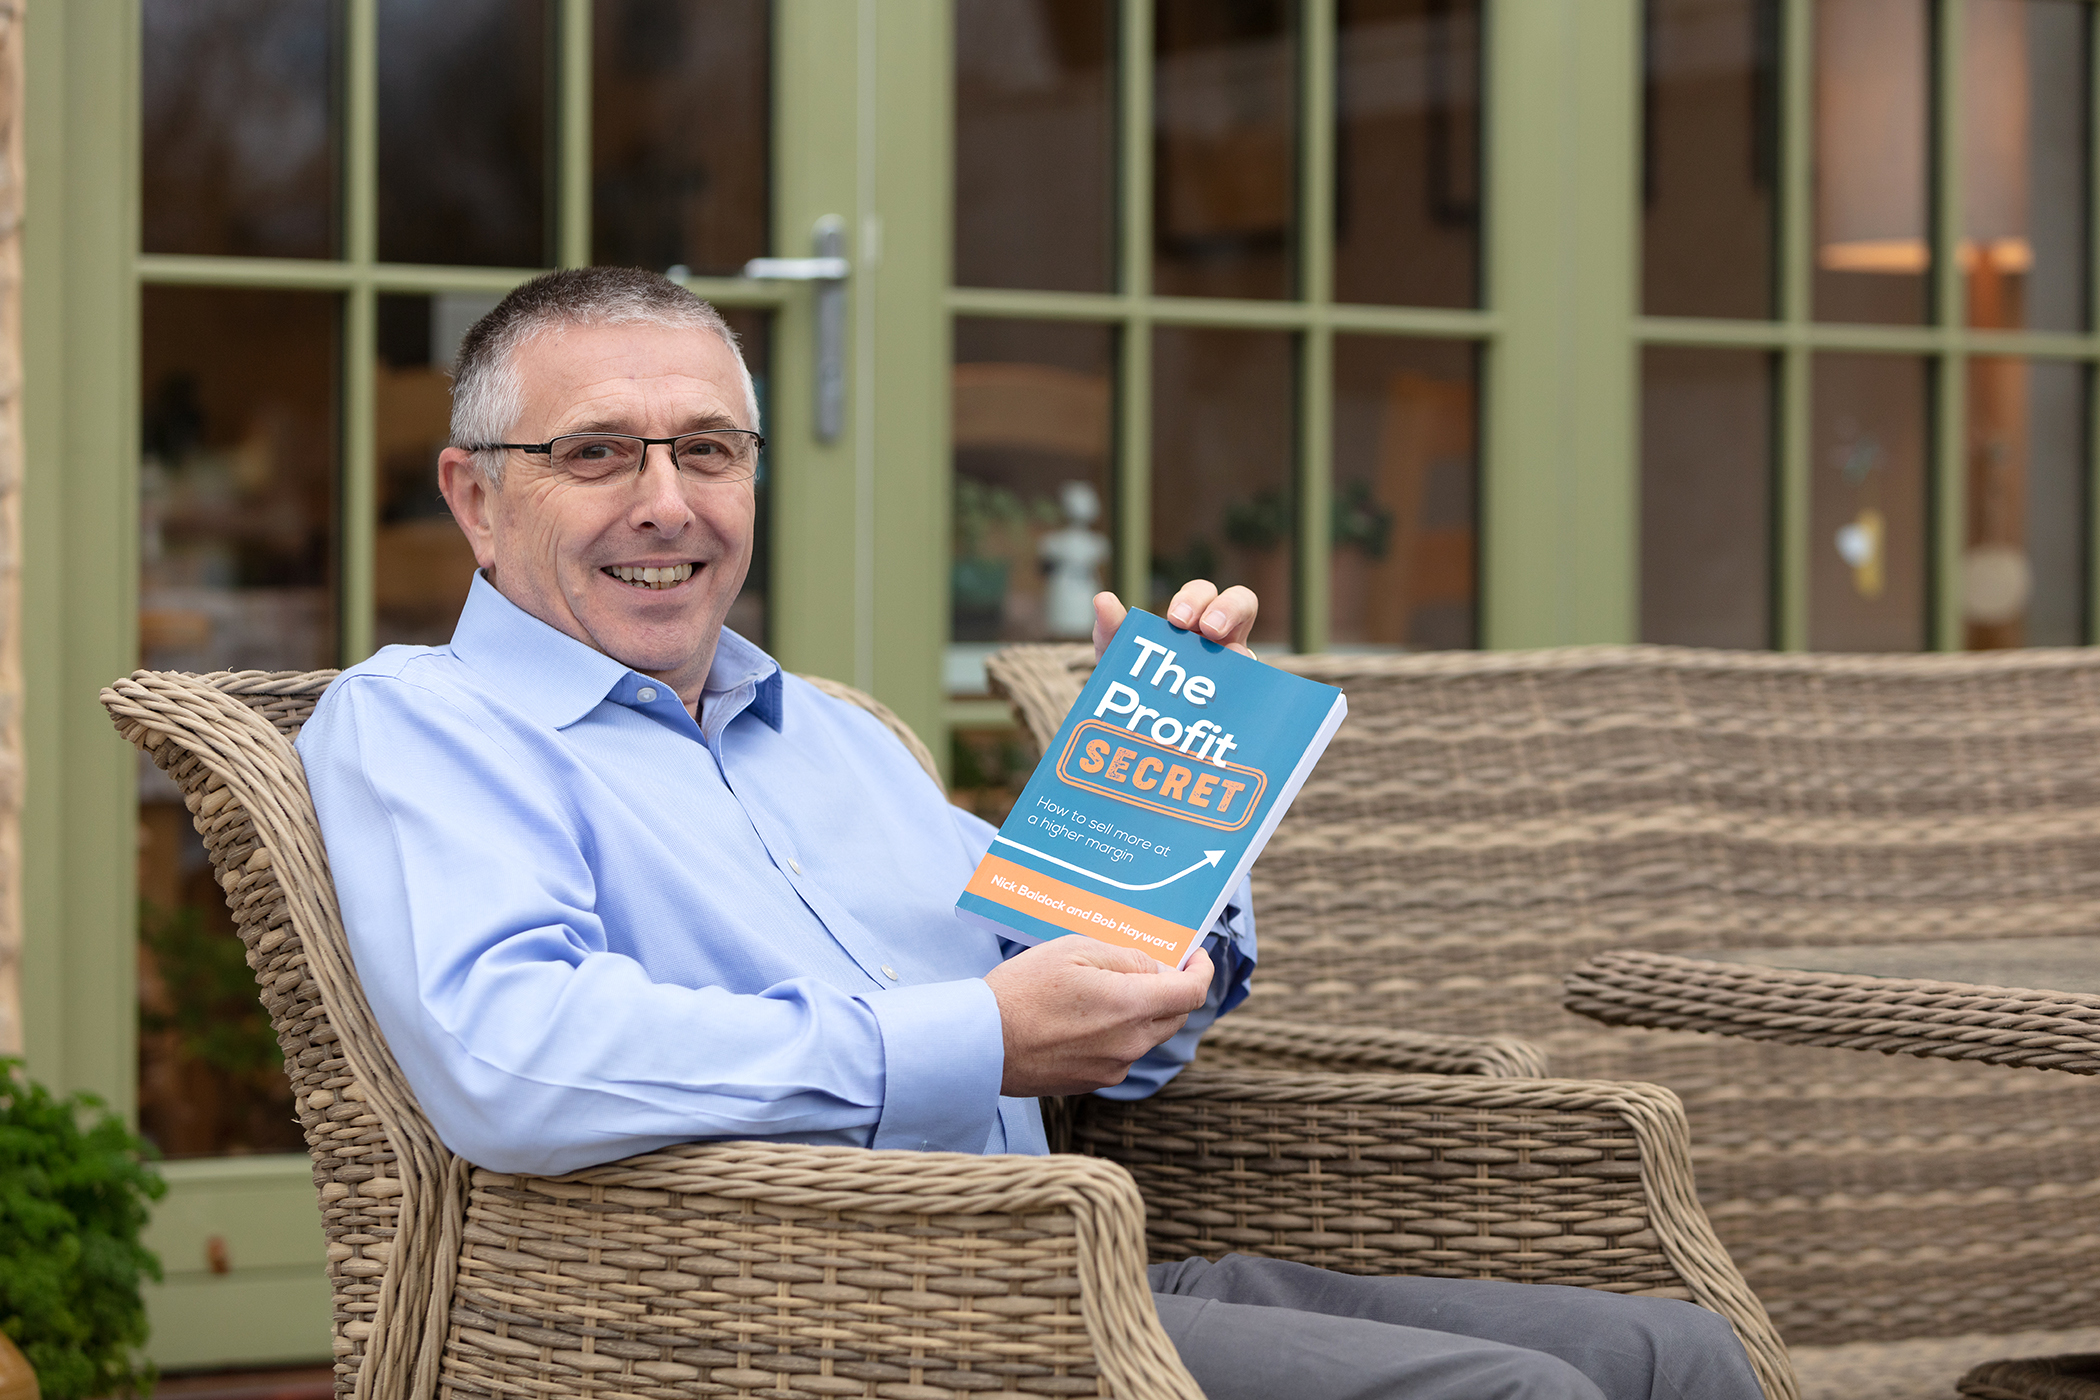 ENTREPRENEUR AND AUTHOR BOB HAYWARD PUBLISHES HIS LATEST BOOK ON 'PROFIT'.